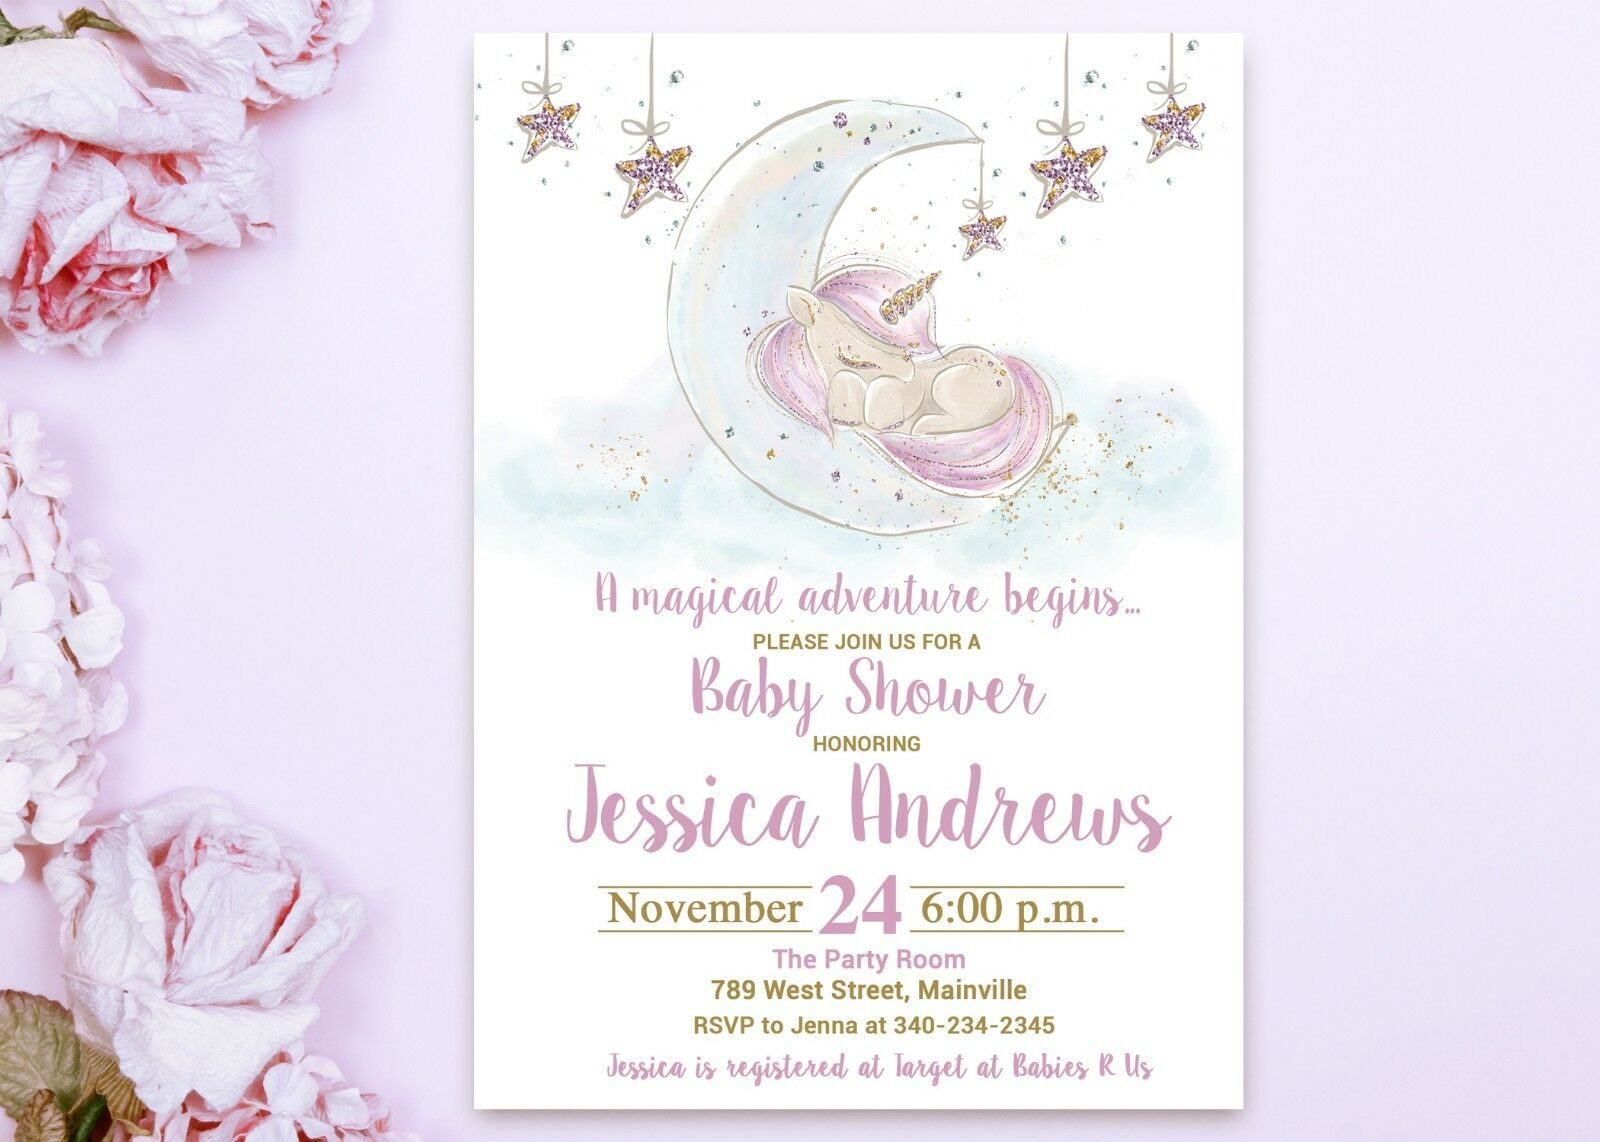 Unicorn Baby Shower Invitation, Invitation, Unicorn, Baby Unicorn, Baby Shower